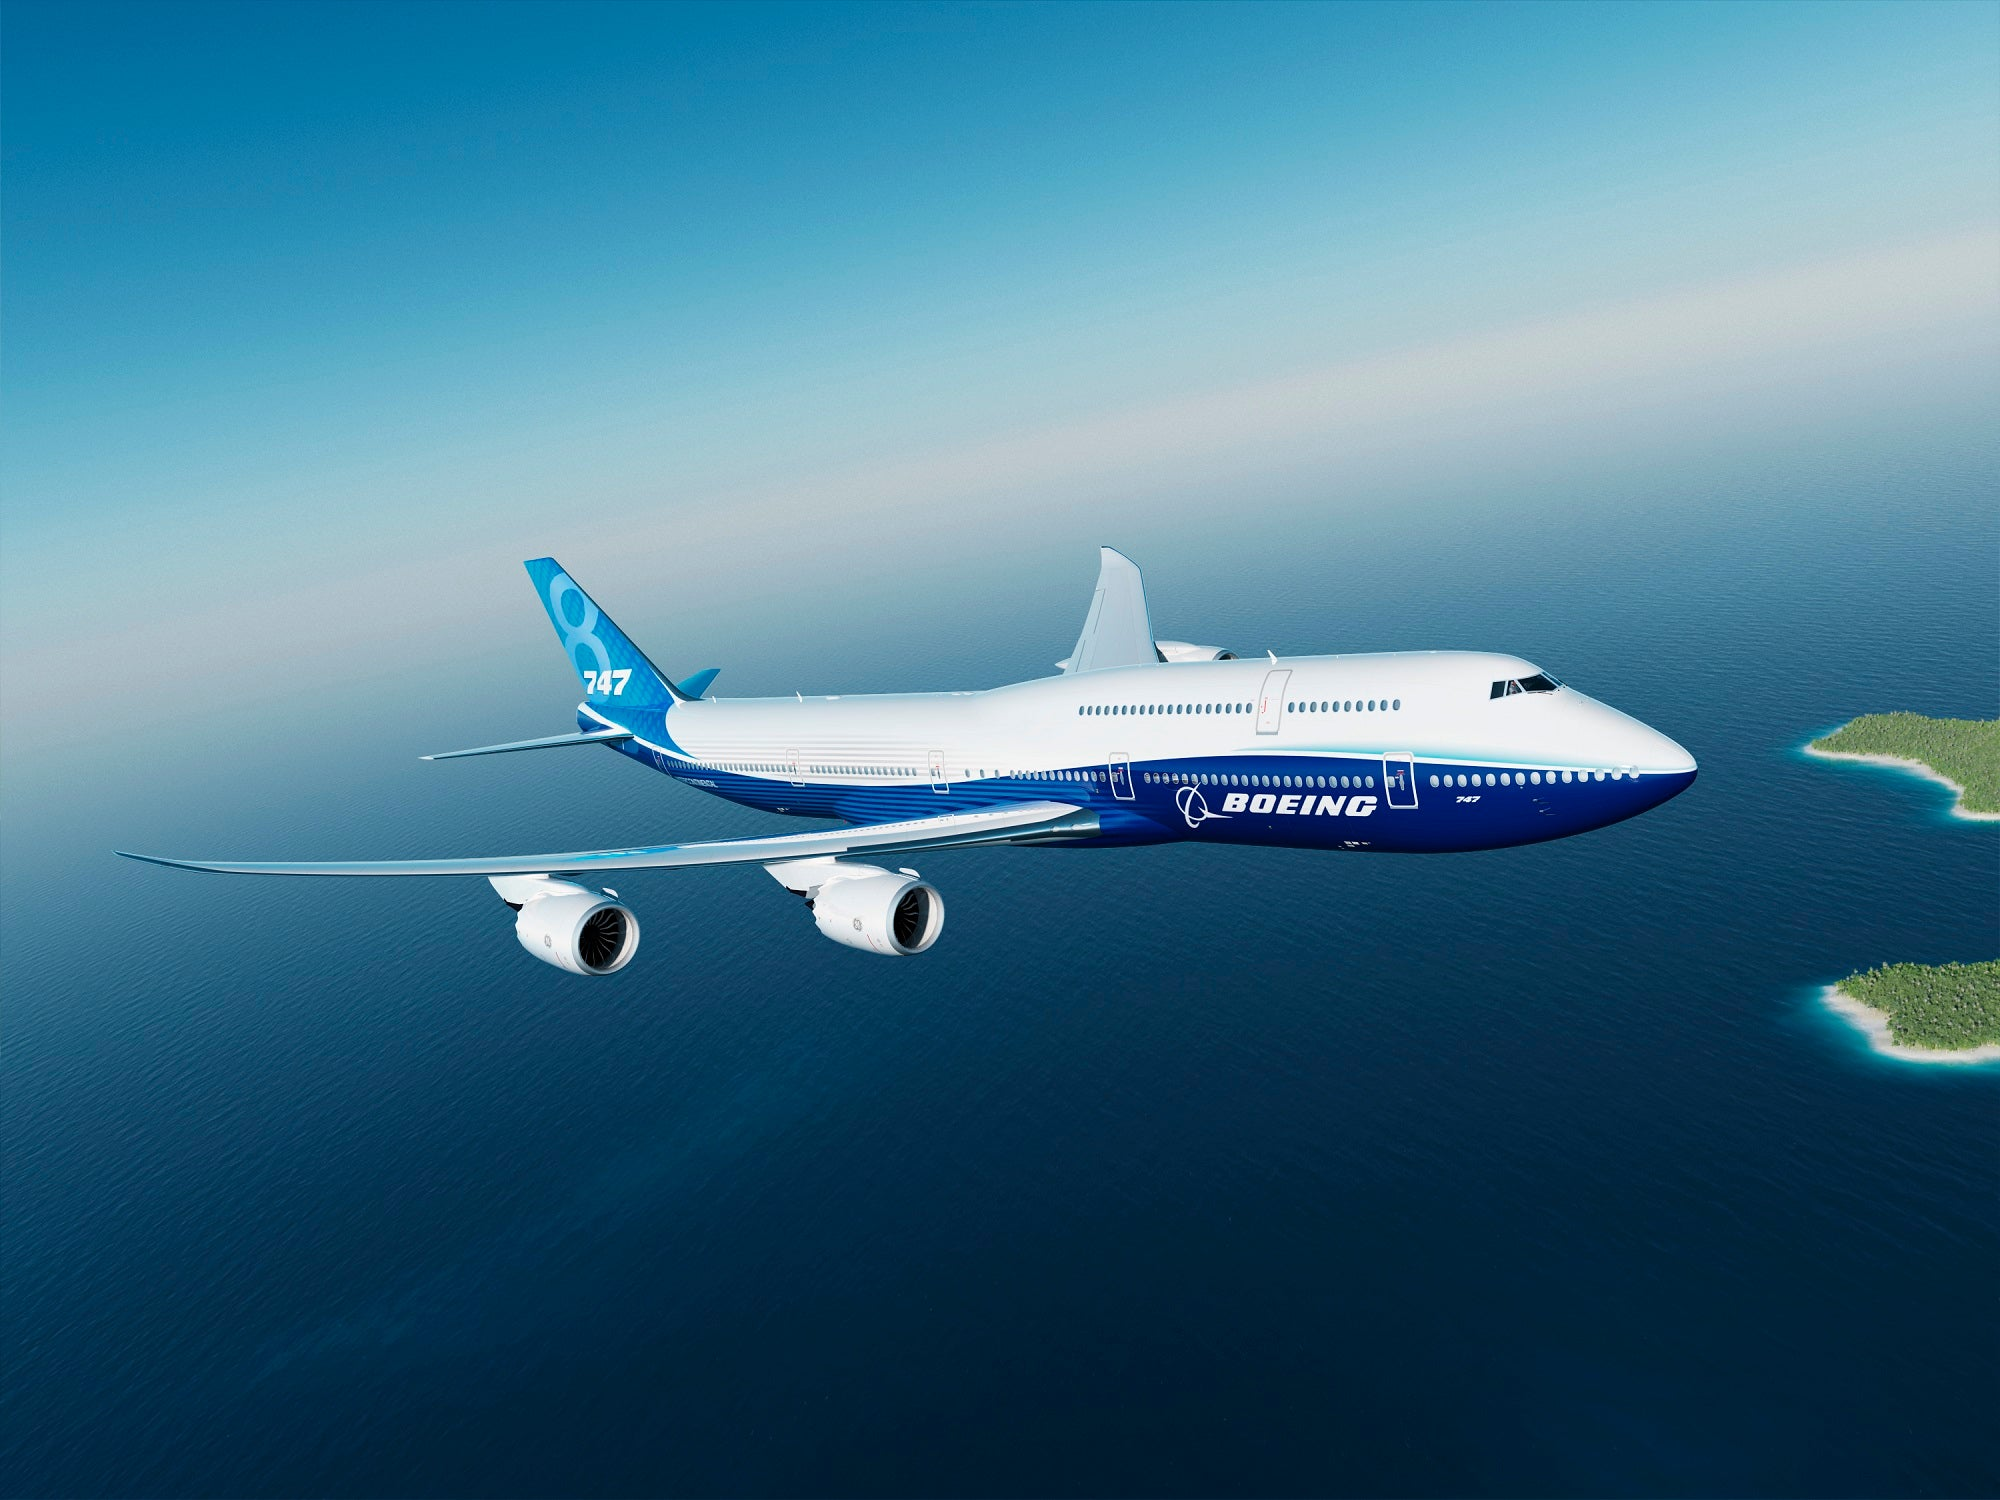 Boeing to Wind Down 747 Production, a Report Says | The Motley Fool